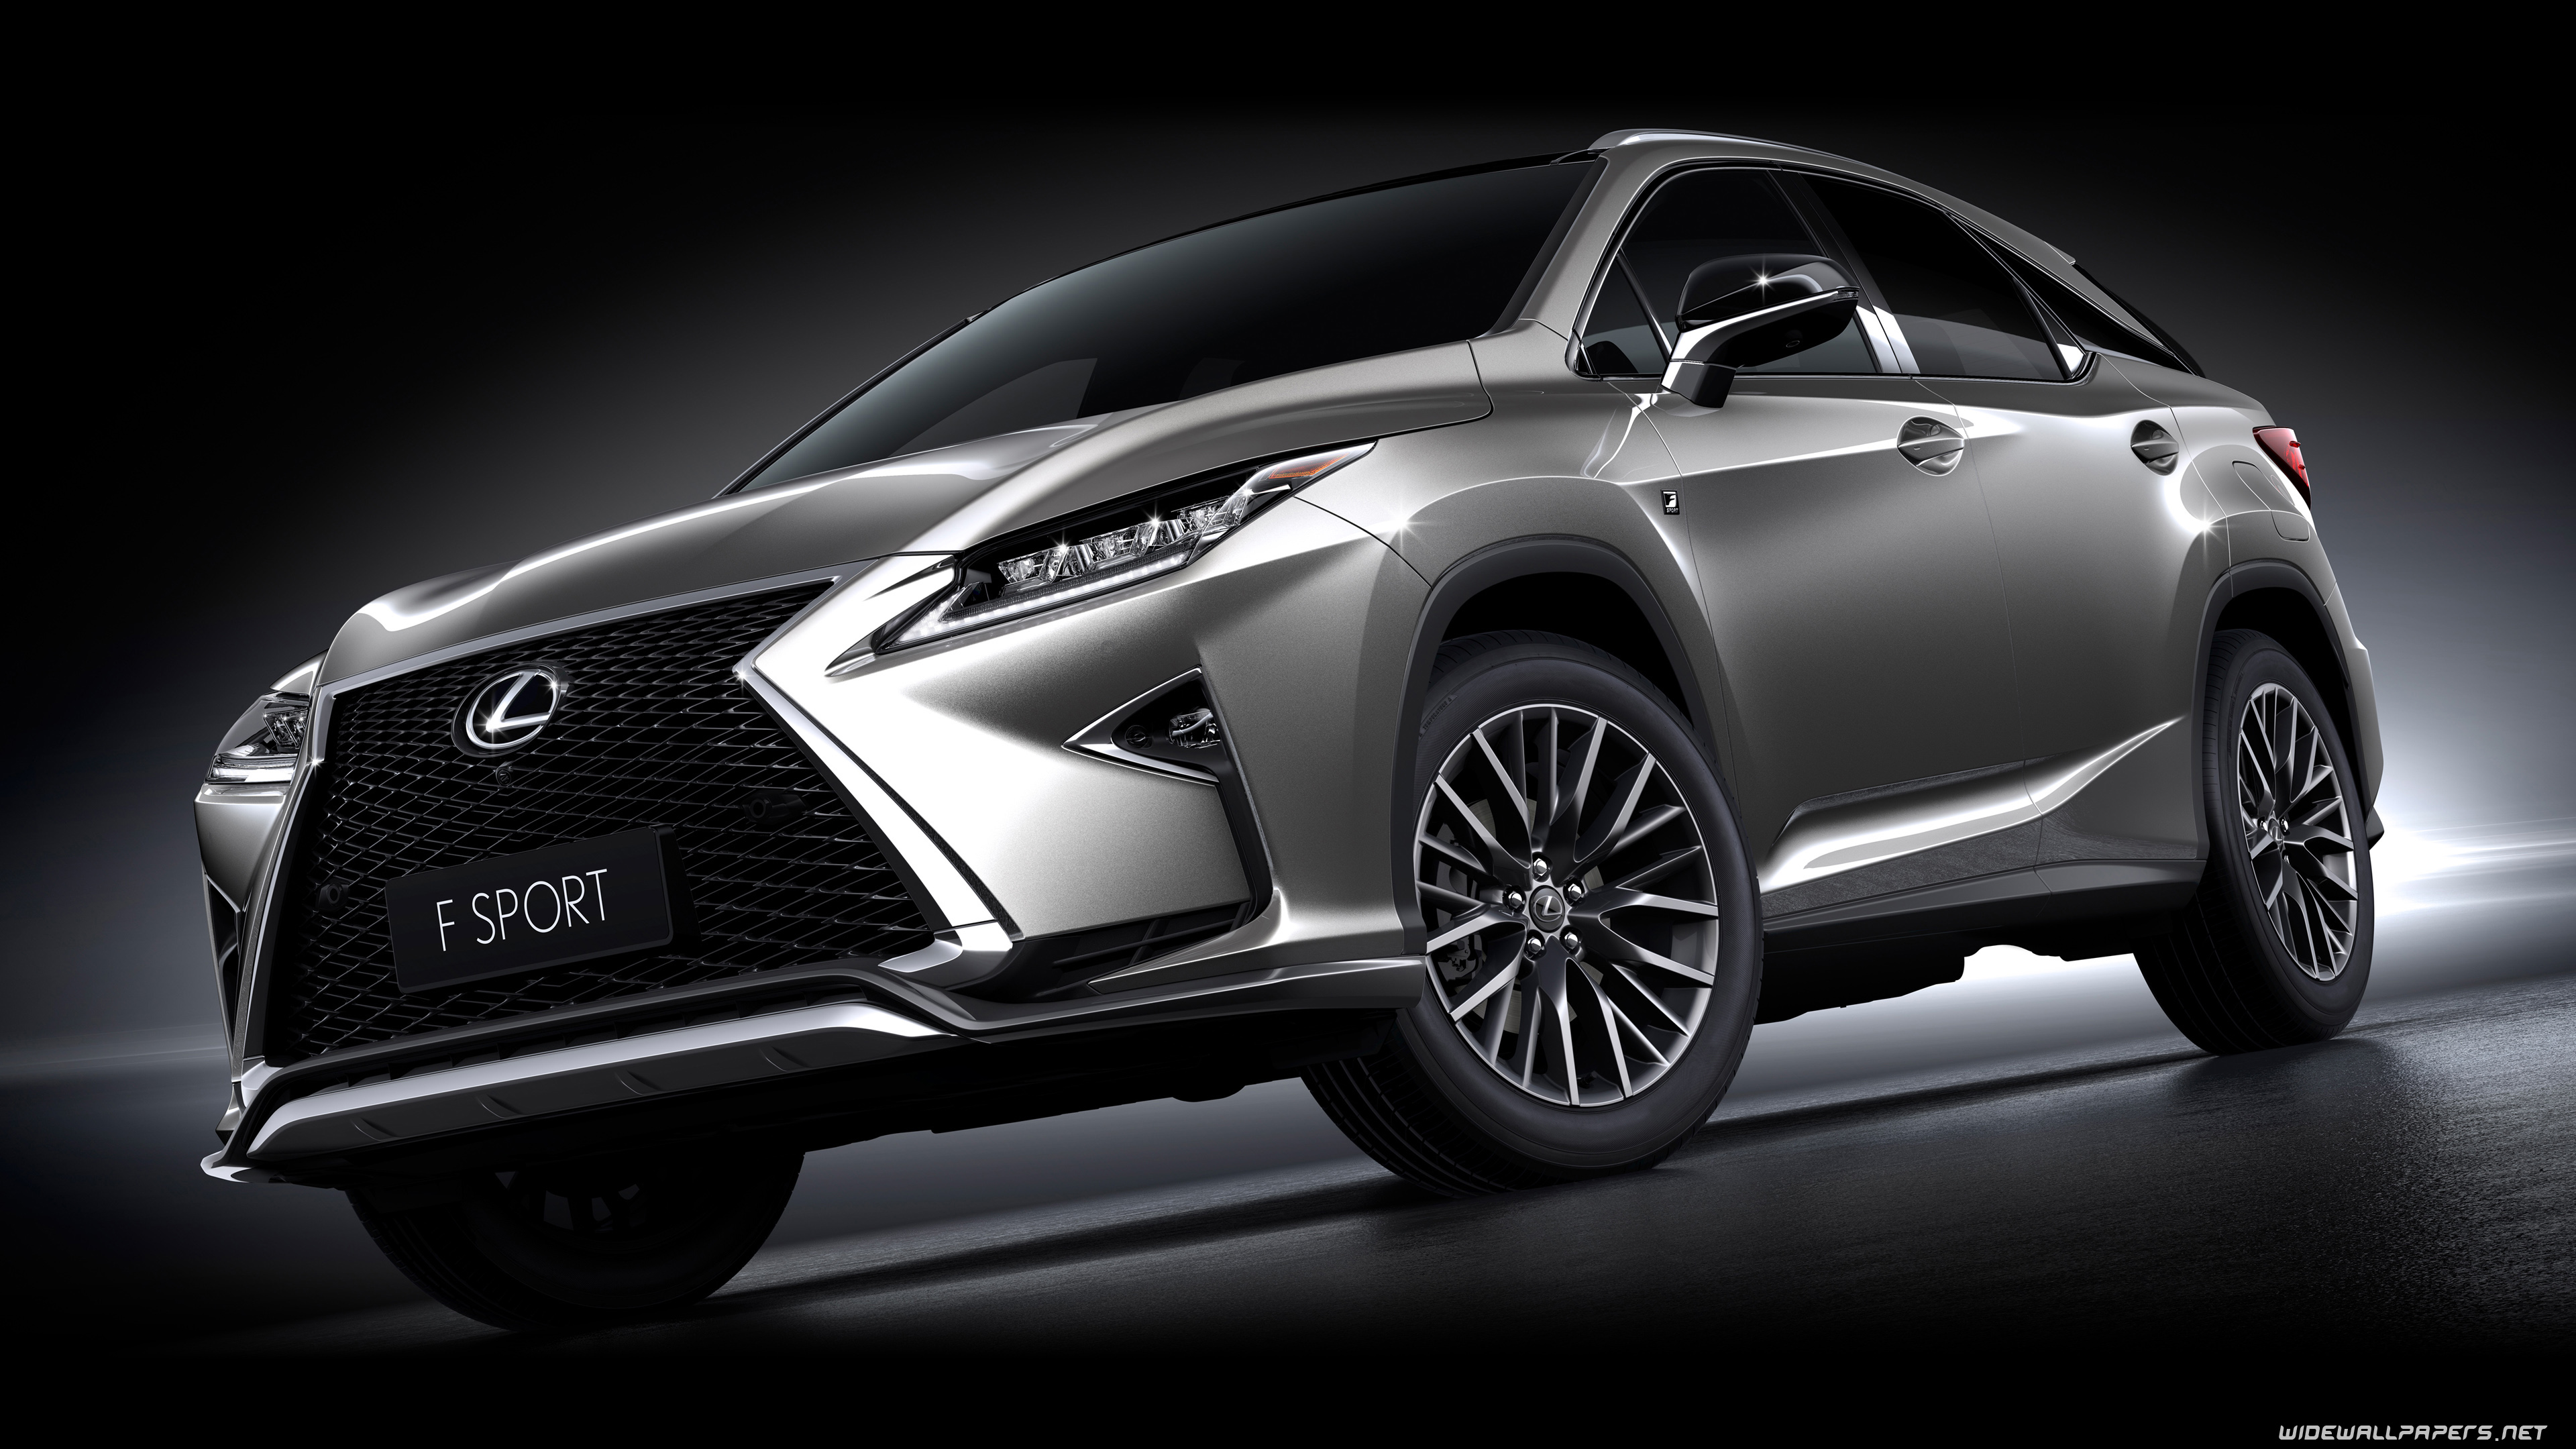 lexus rx cars desktop wallpapers 4k ultra hd. Black Bedroom Furniture Sets. Home Design Ideas